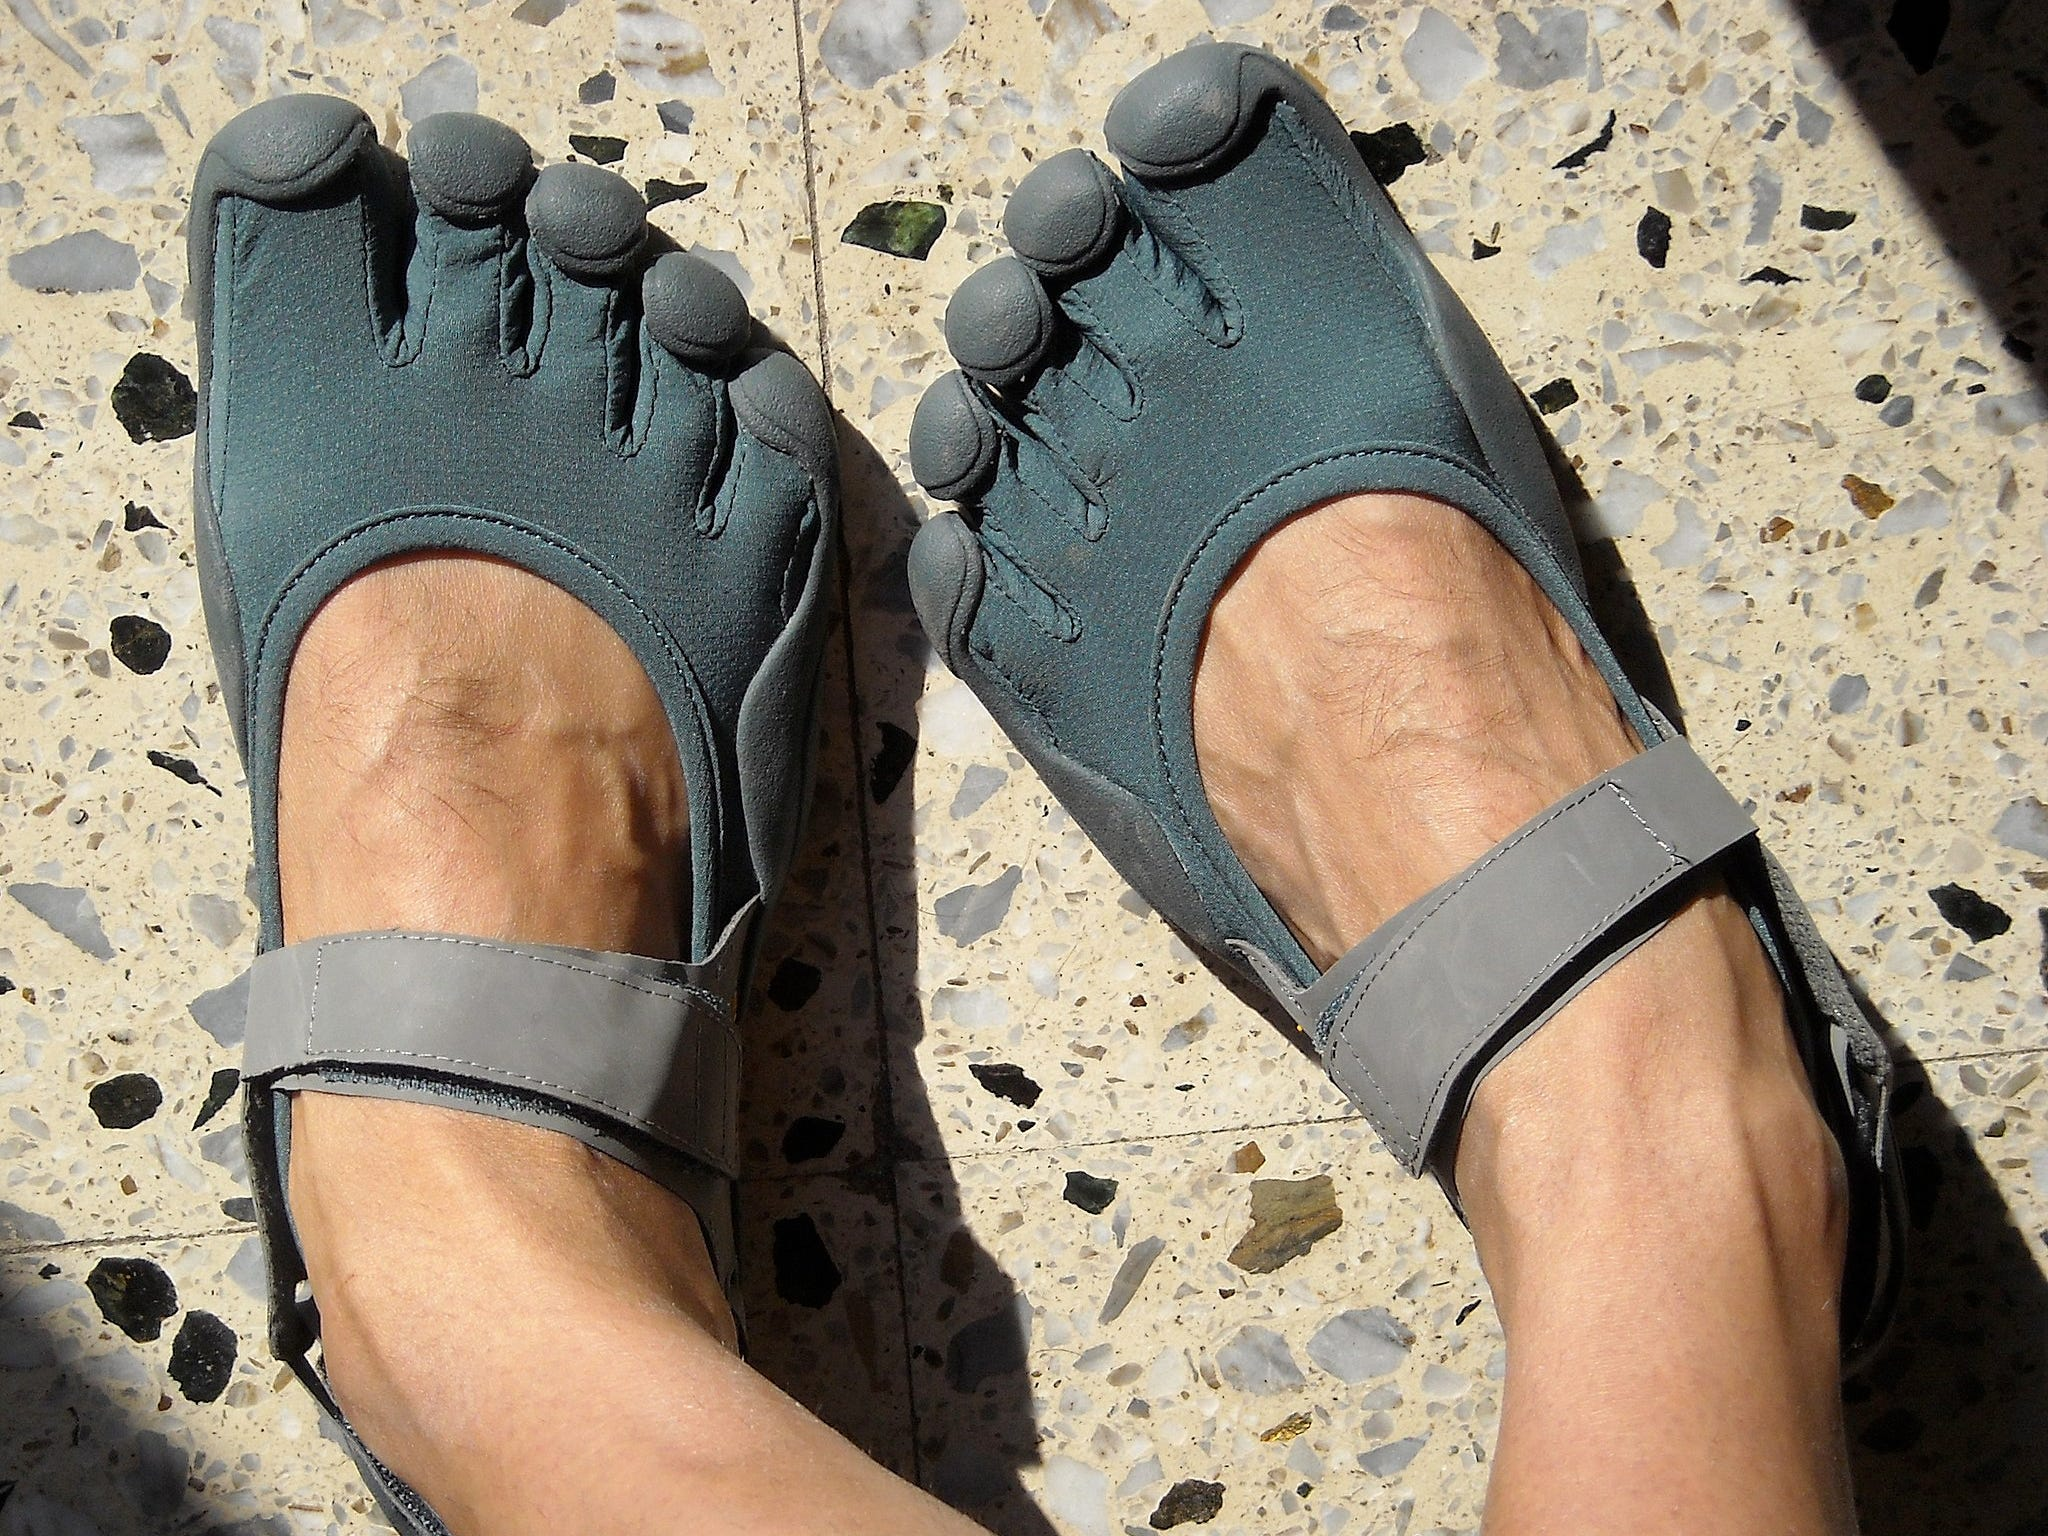 A pair of Vibram Five Finger minimalist shoes. (Wikimedia Commons)